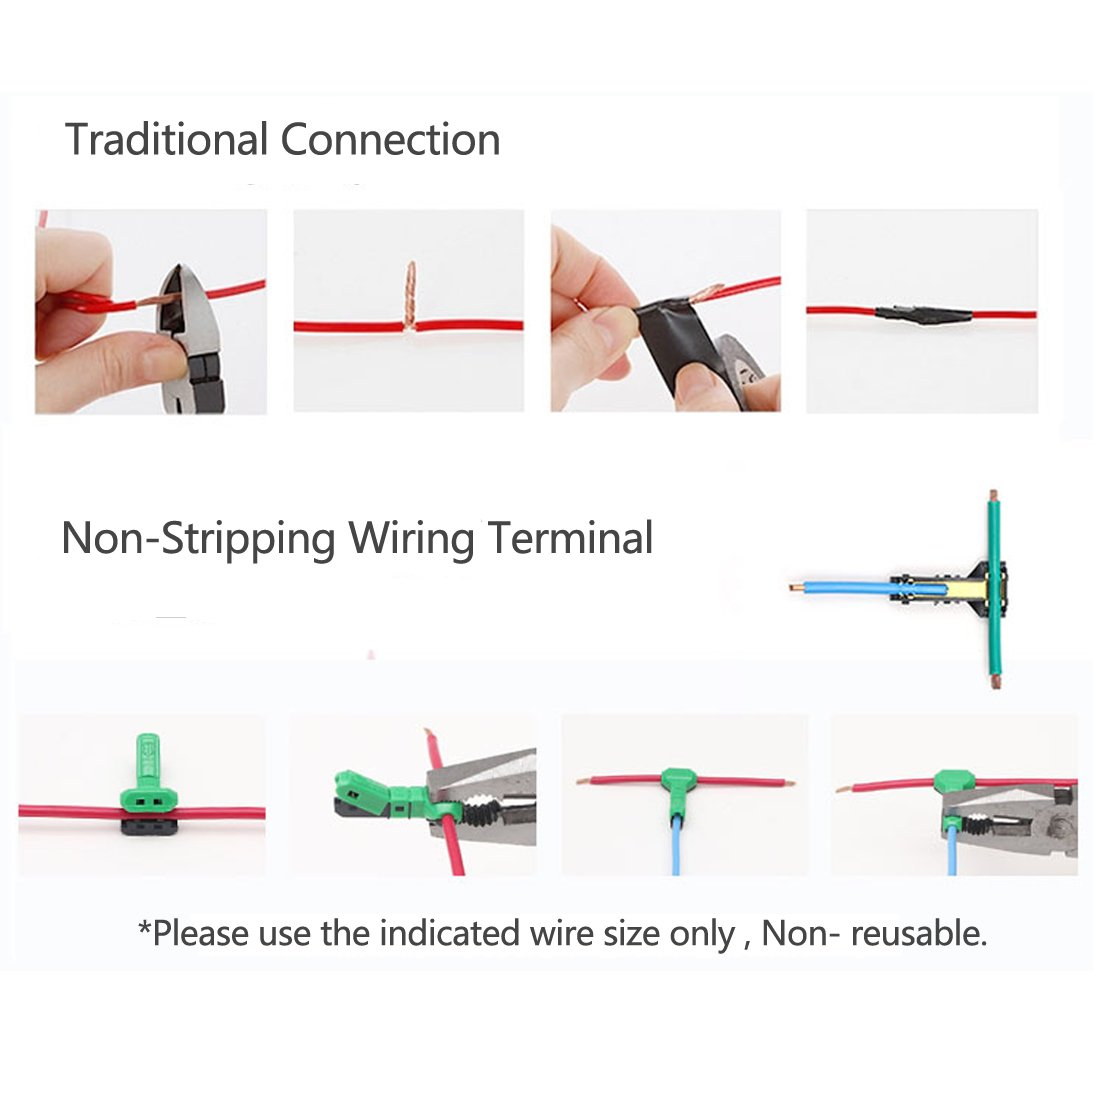 Electrical Wire Connectors T Tap Quick Splice 16 Awg With No And Basic Wiring Home Stripping Of Wires Pack 10 Ac Jwt Tools Improvement